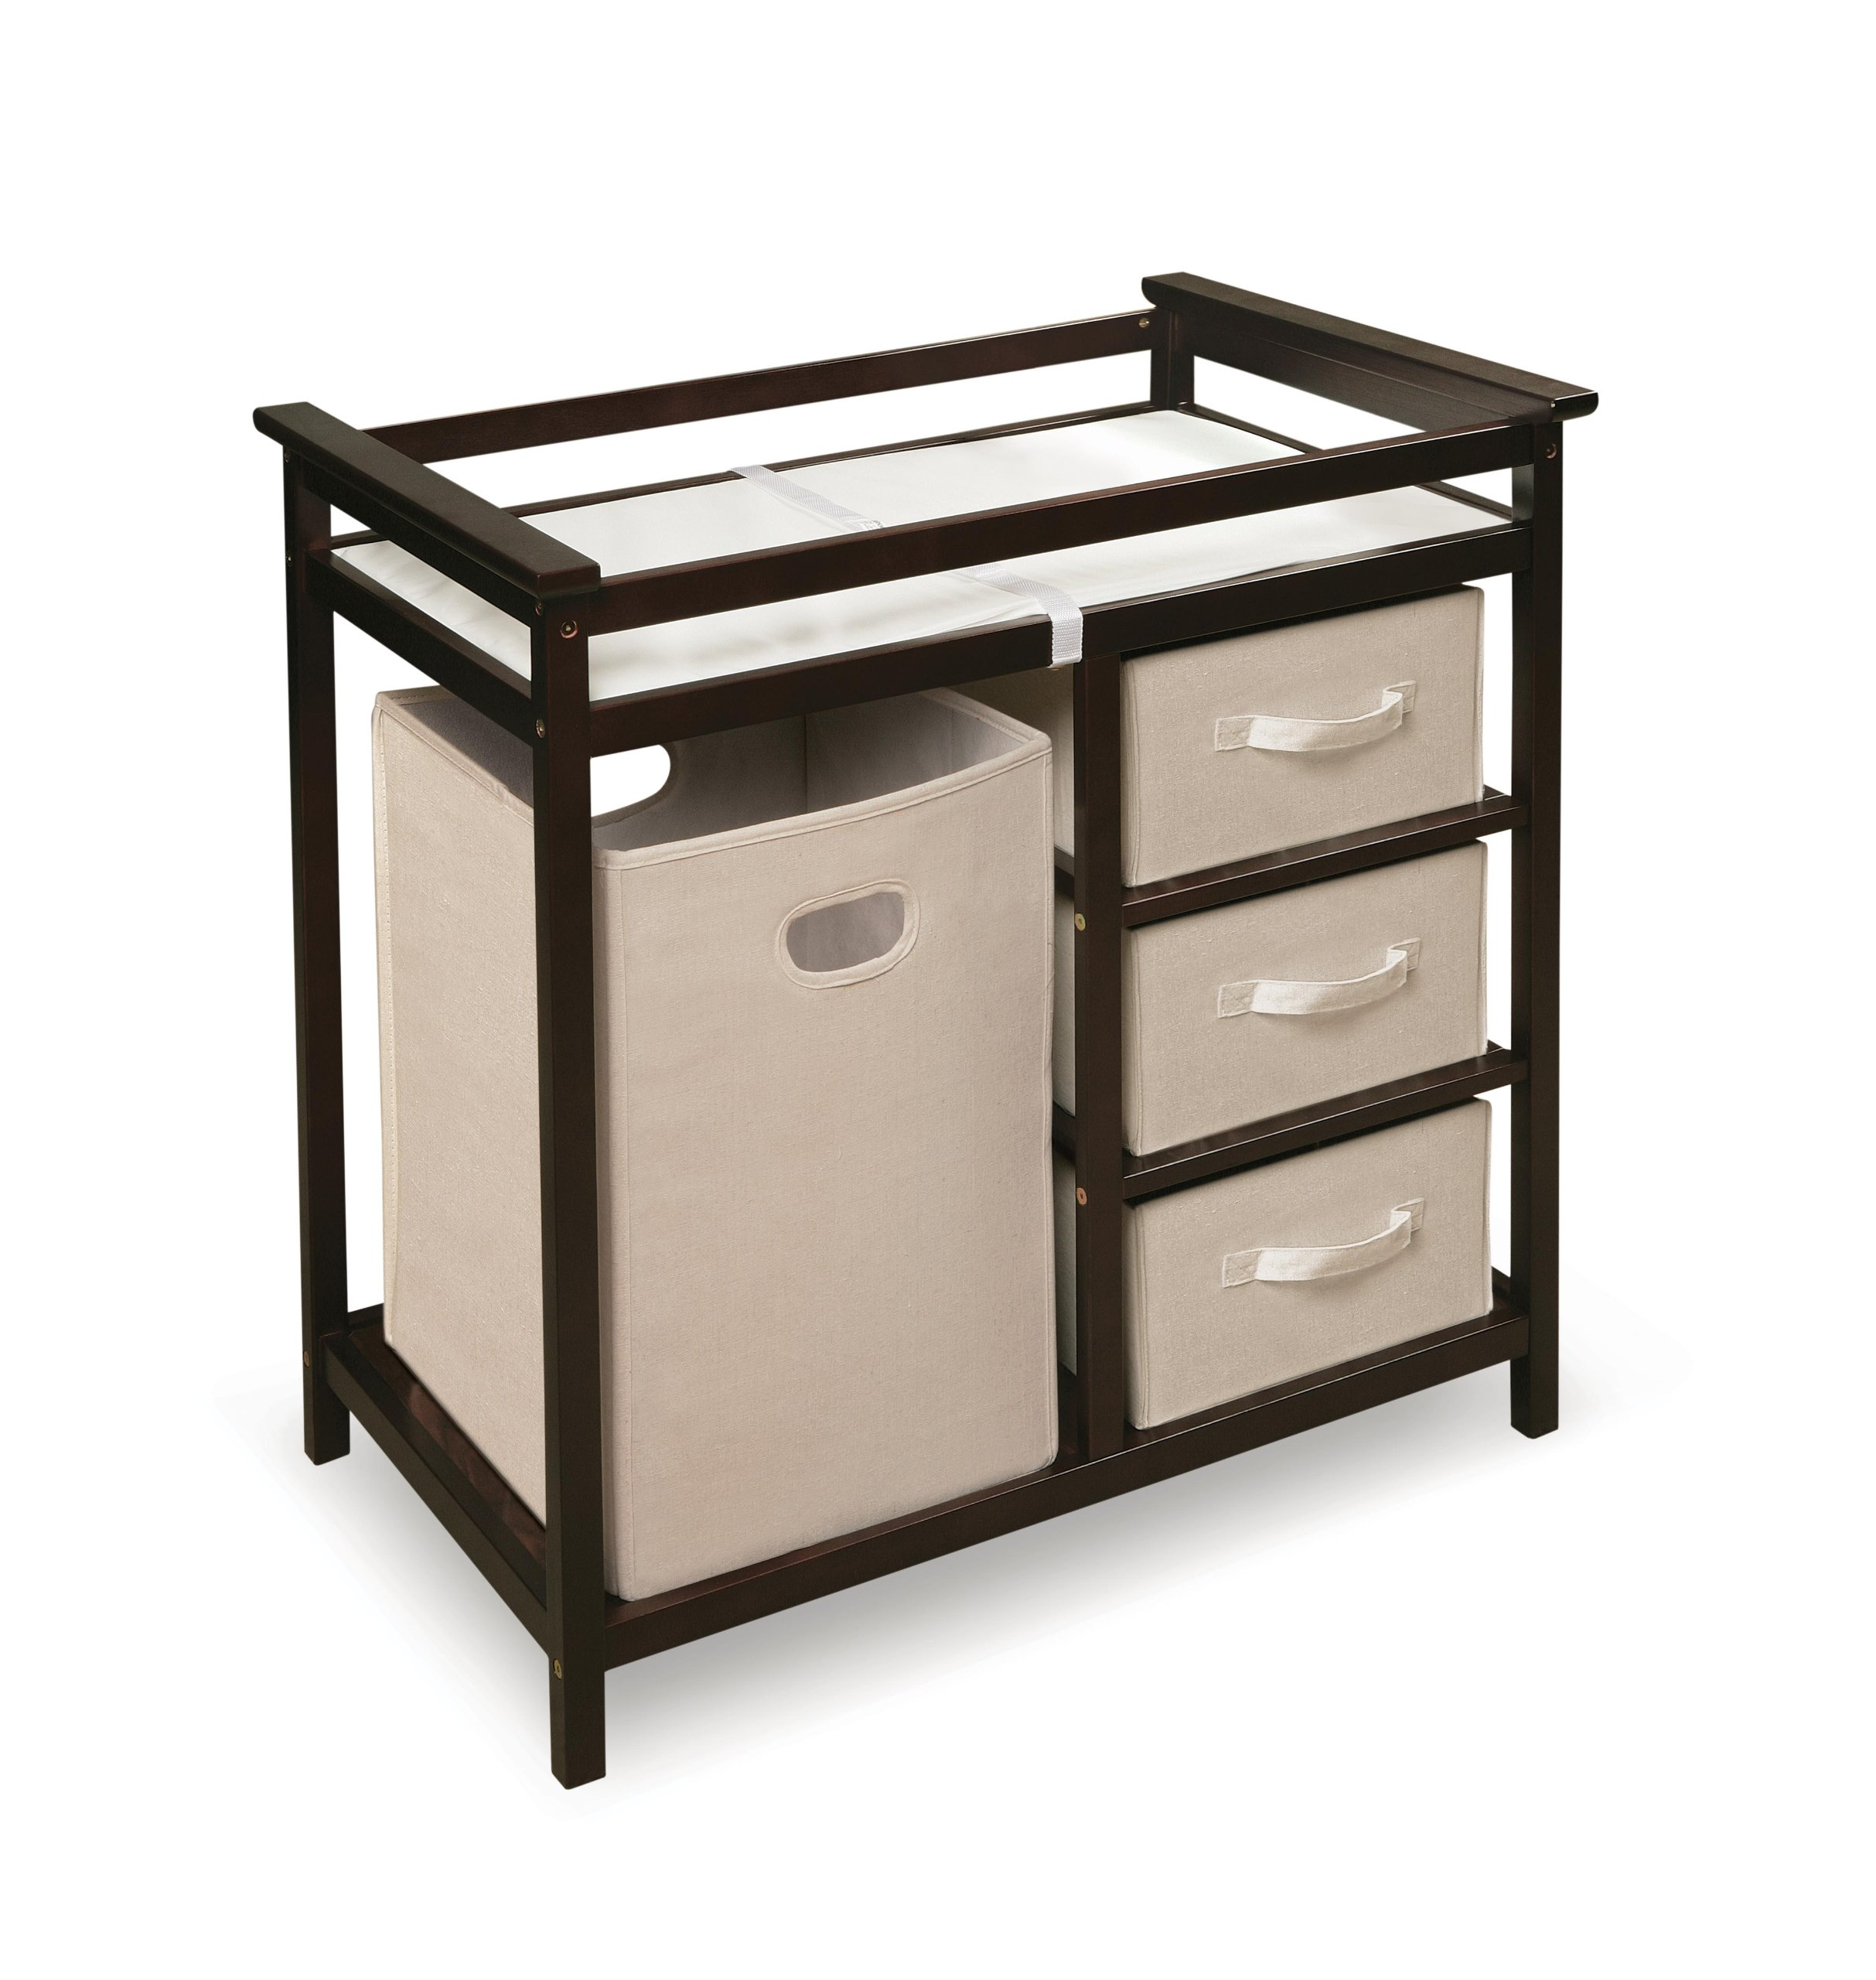 Badger Basket Modern Changing Table with Hamper/3 Baskets, Espresso by Badger Basket